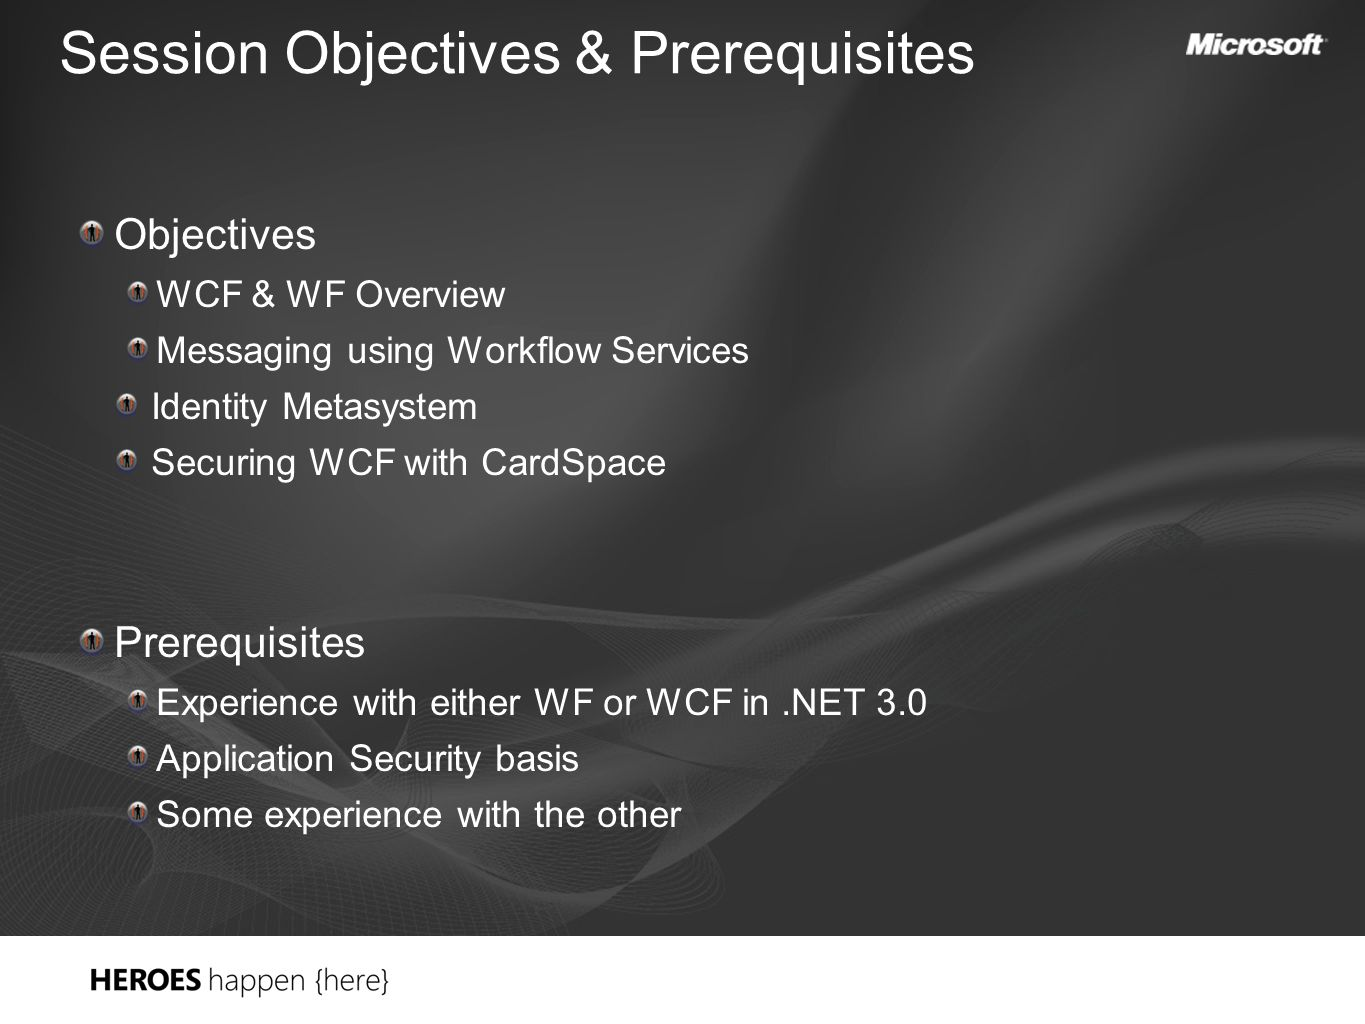 Session Objectives & Prerequisites Objectives WCF & WF Overview Messaging using Workflow Services Identity Metasystem Securing WCF with CardSpace Prerequisites Experience with either WF or WCF in.NET 3.0 Application Security basis Some experience with the other